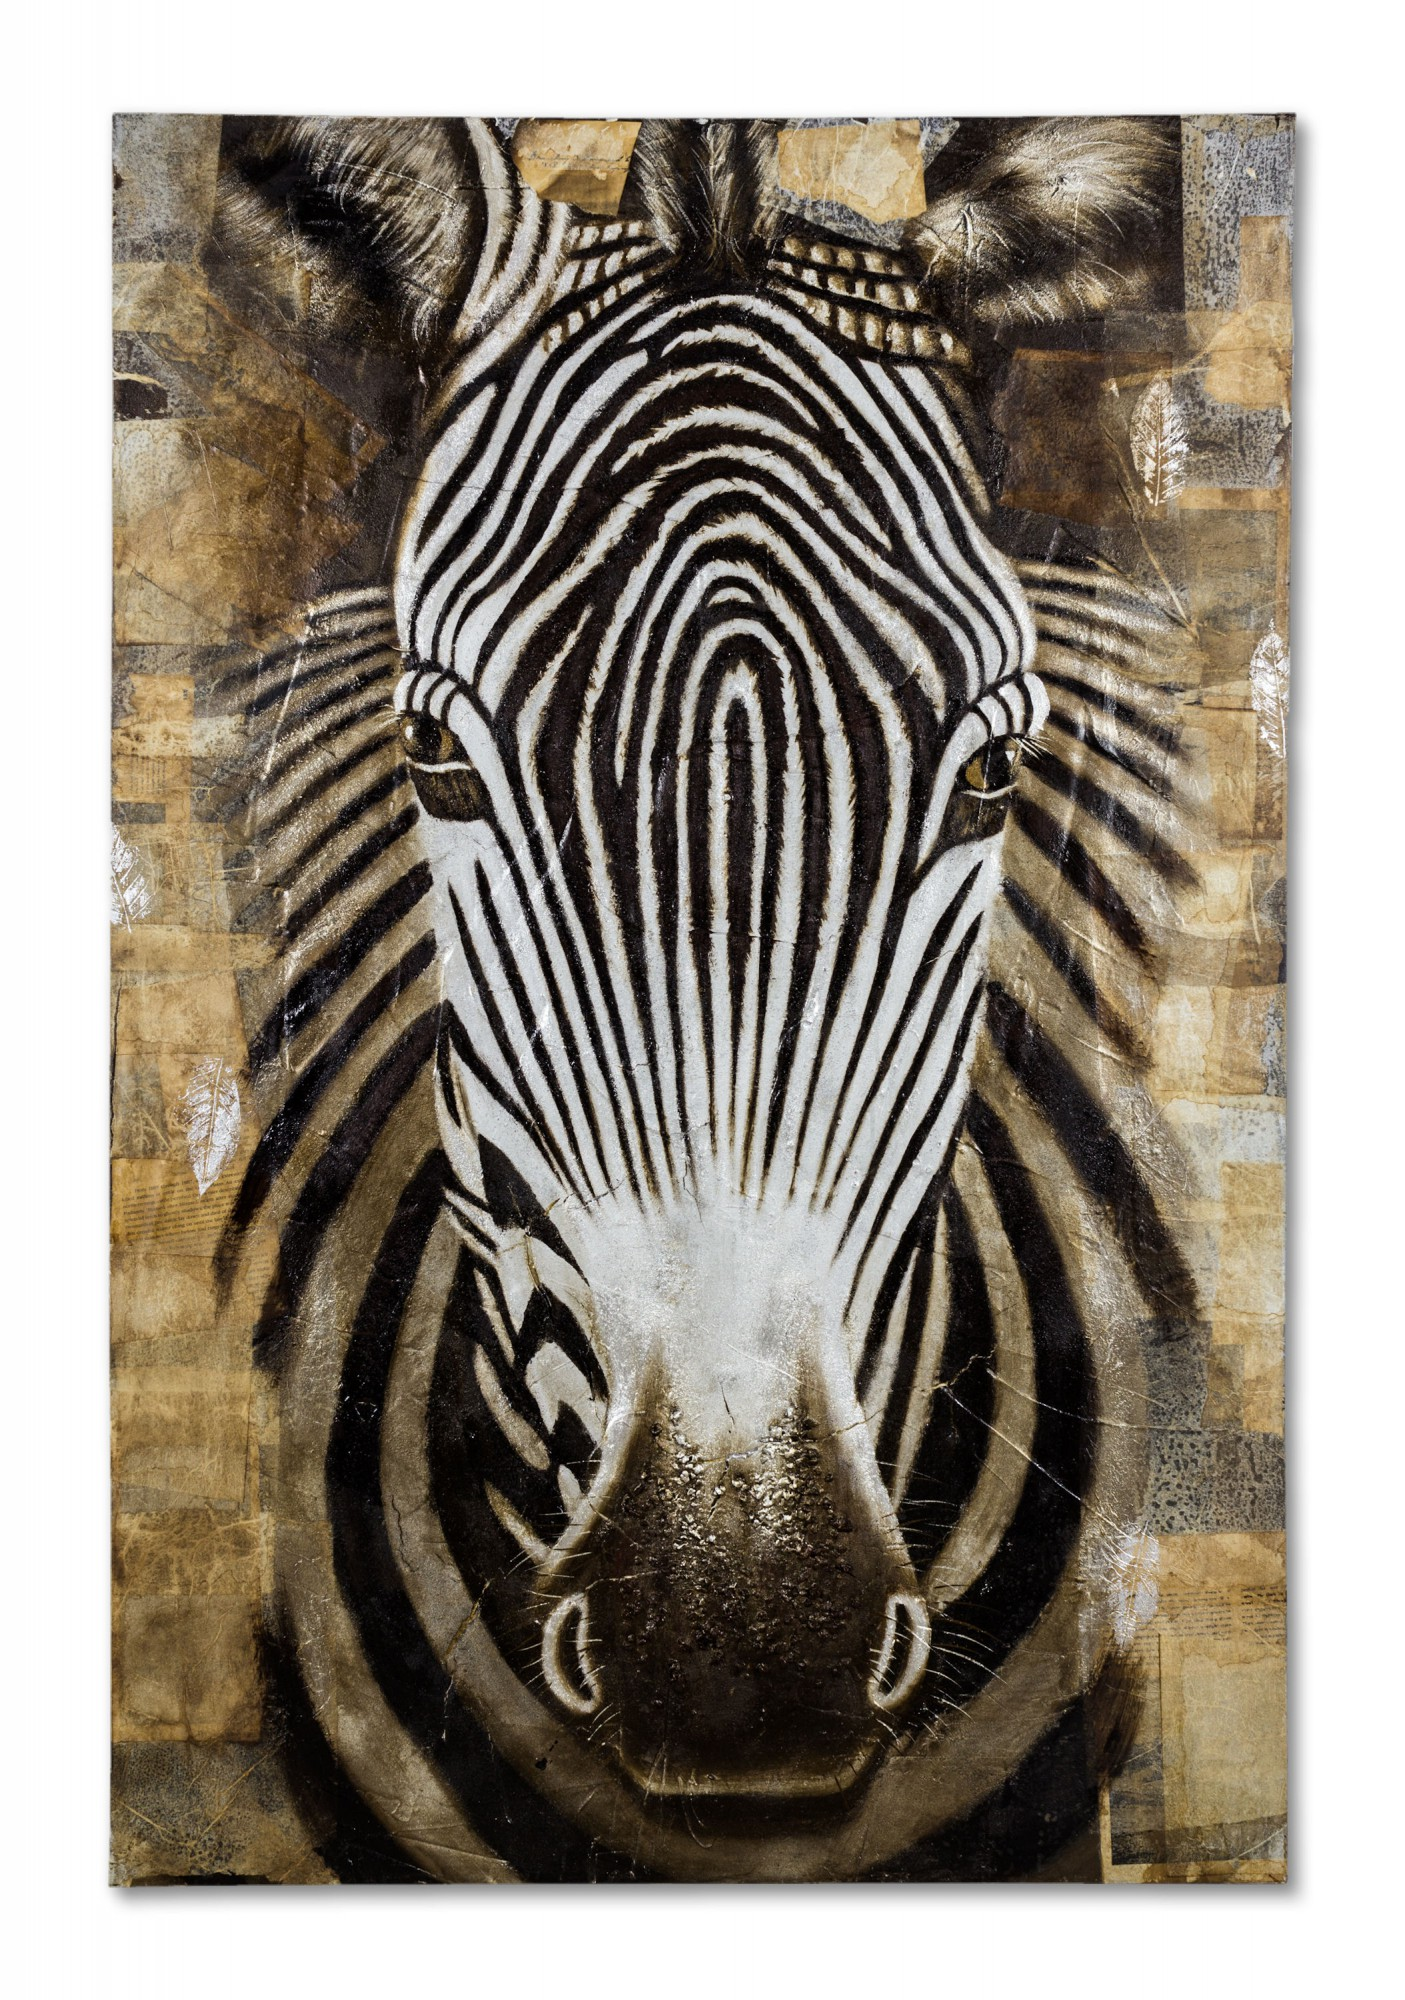 original lgem lde leinwand zebra afrika gem lde 150x100 cm wandbild afrika ebay. Black Bedroom Furniture Sets. Home Design Ideas